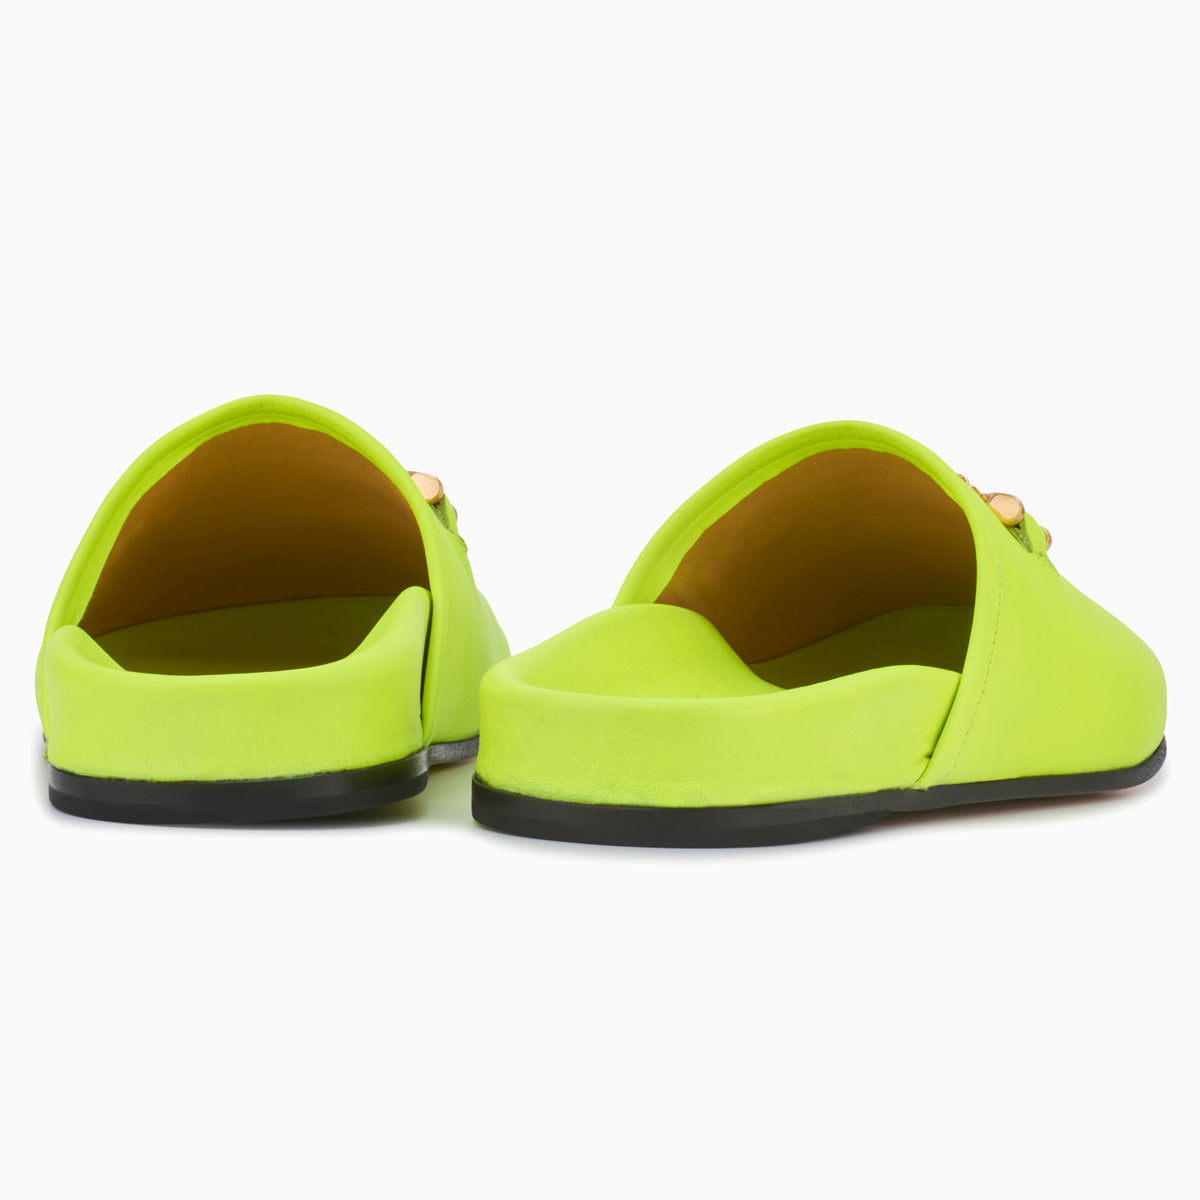 Quincy Slipper Neon Yellow Glove